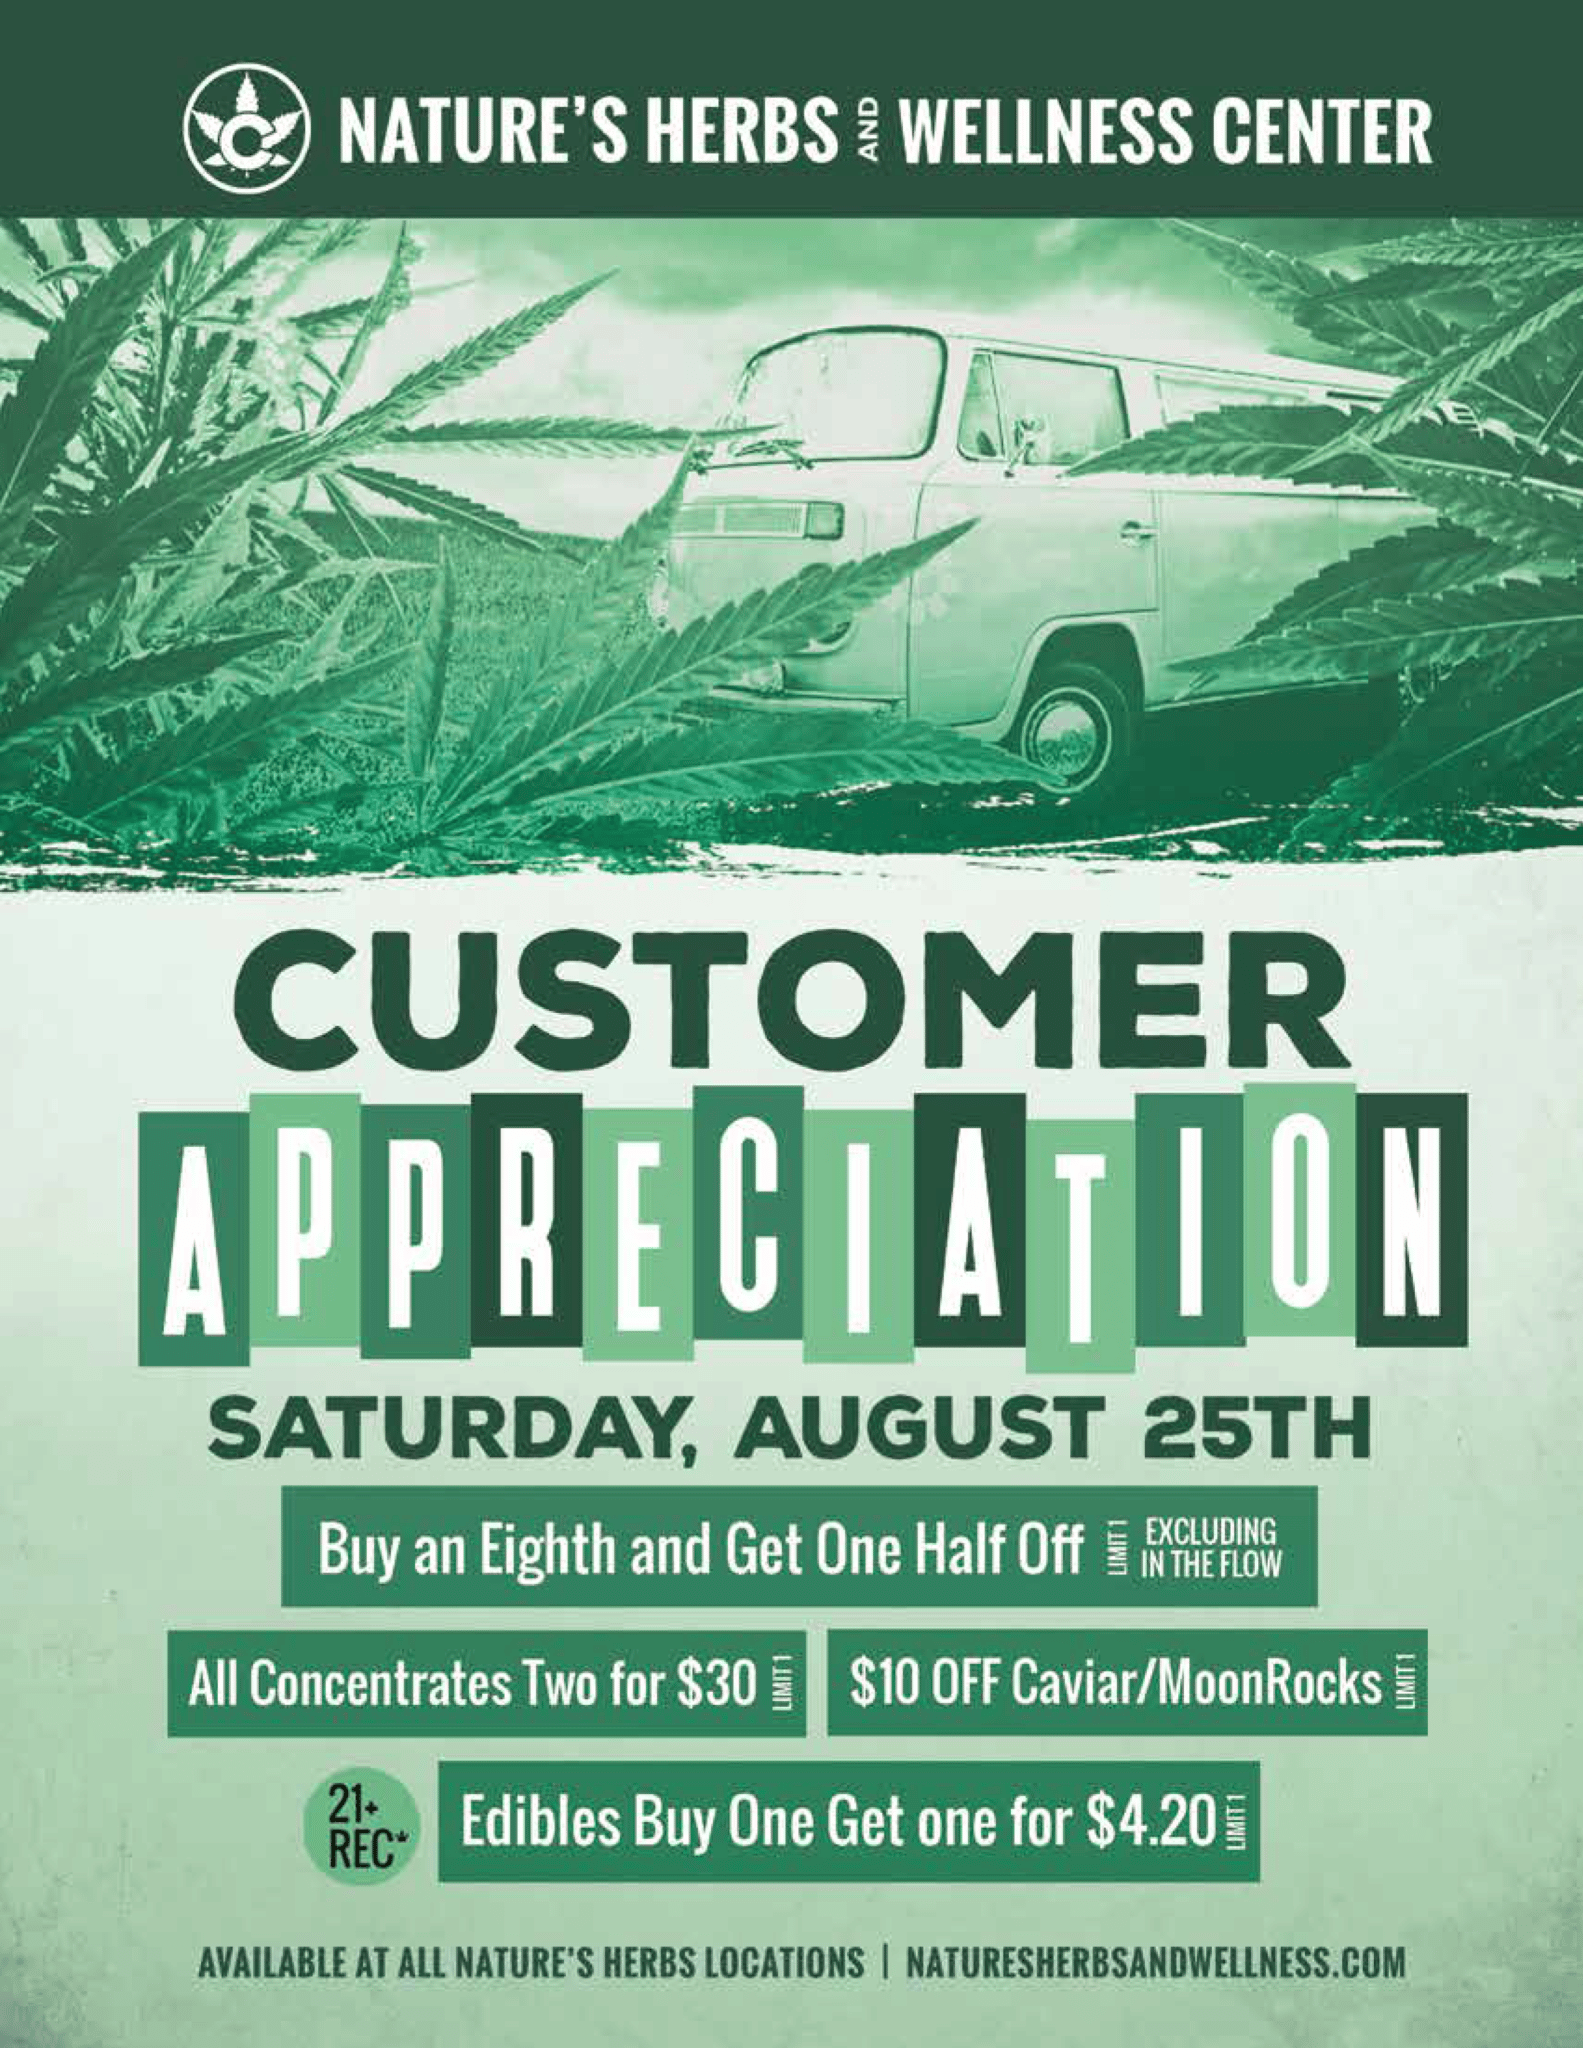 Nature's Herbs Customer Appreciation Day | Saturday, August 25th